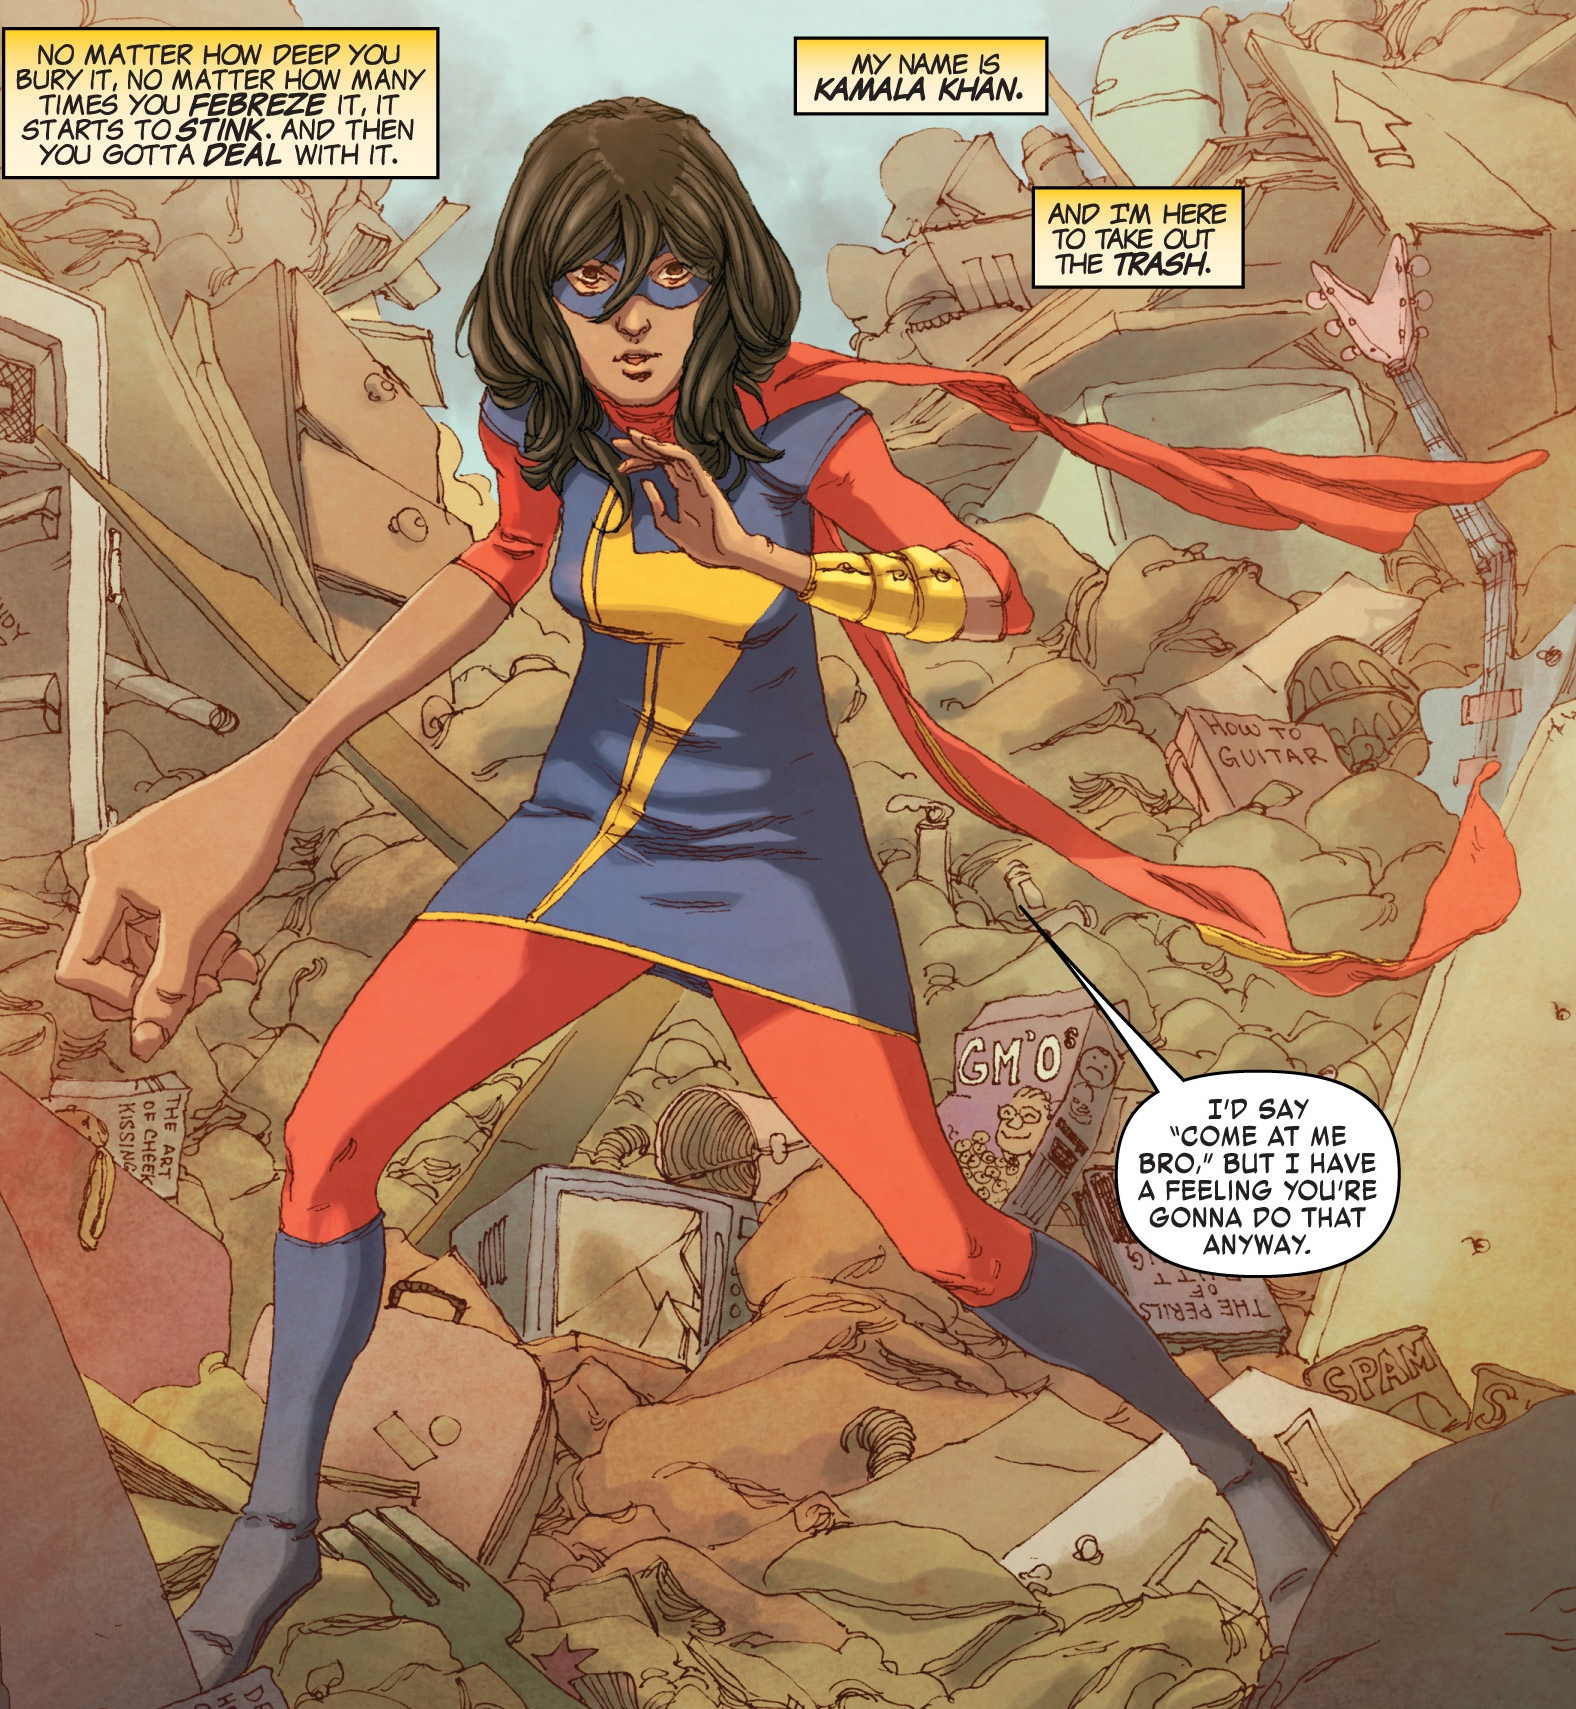 Kamala Khan, the new Ms. Marvel